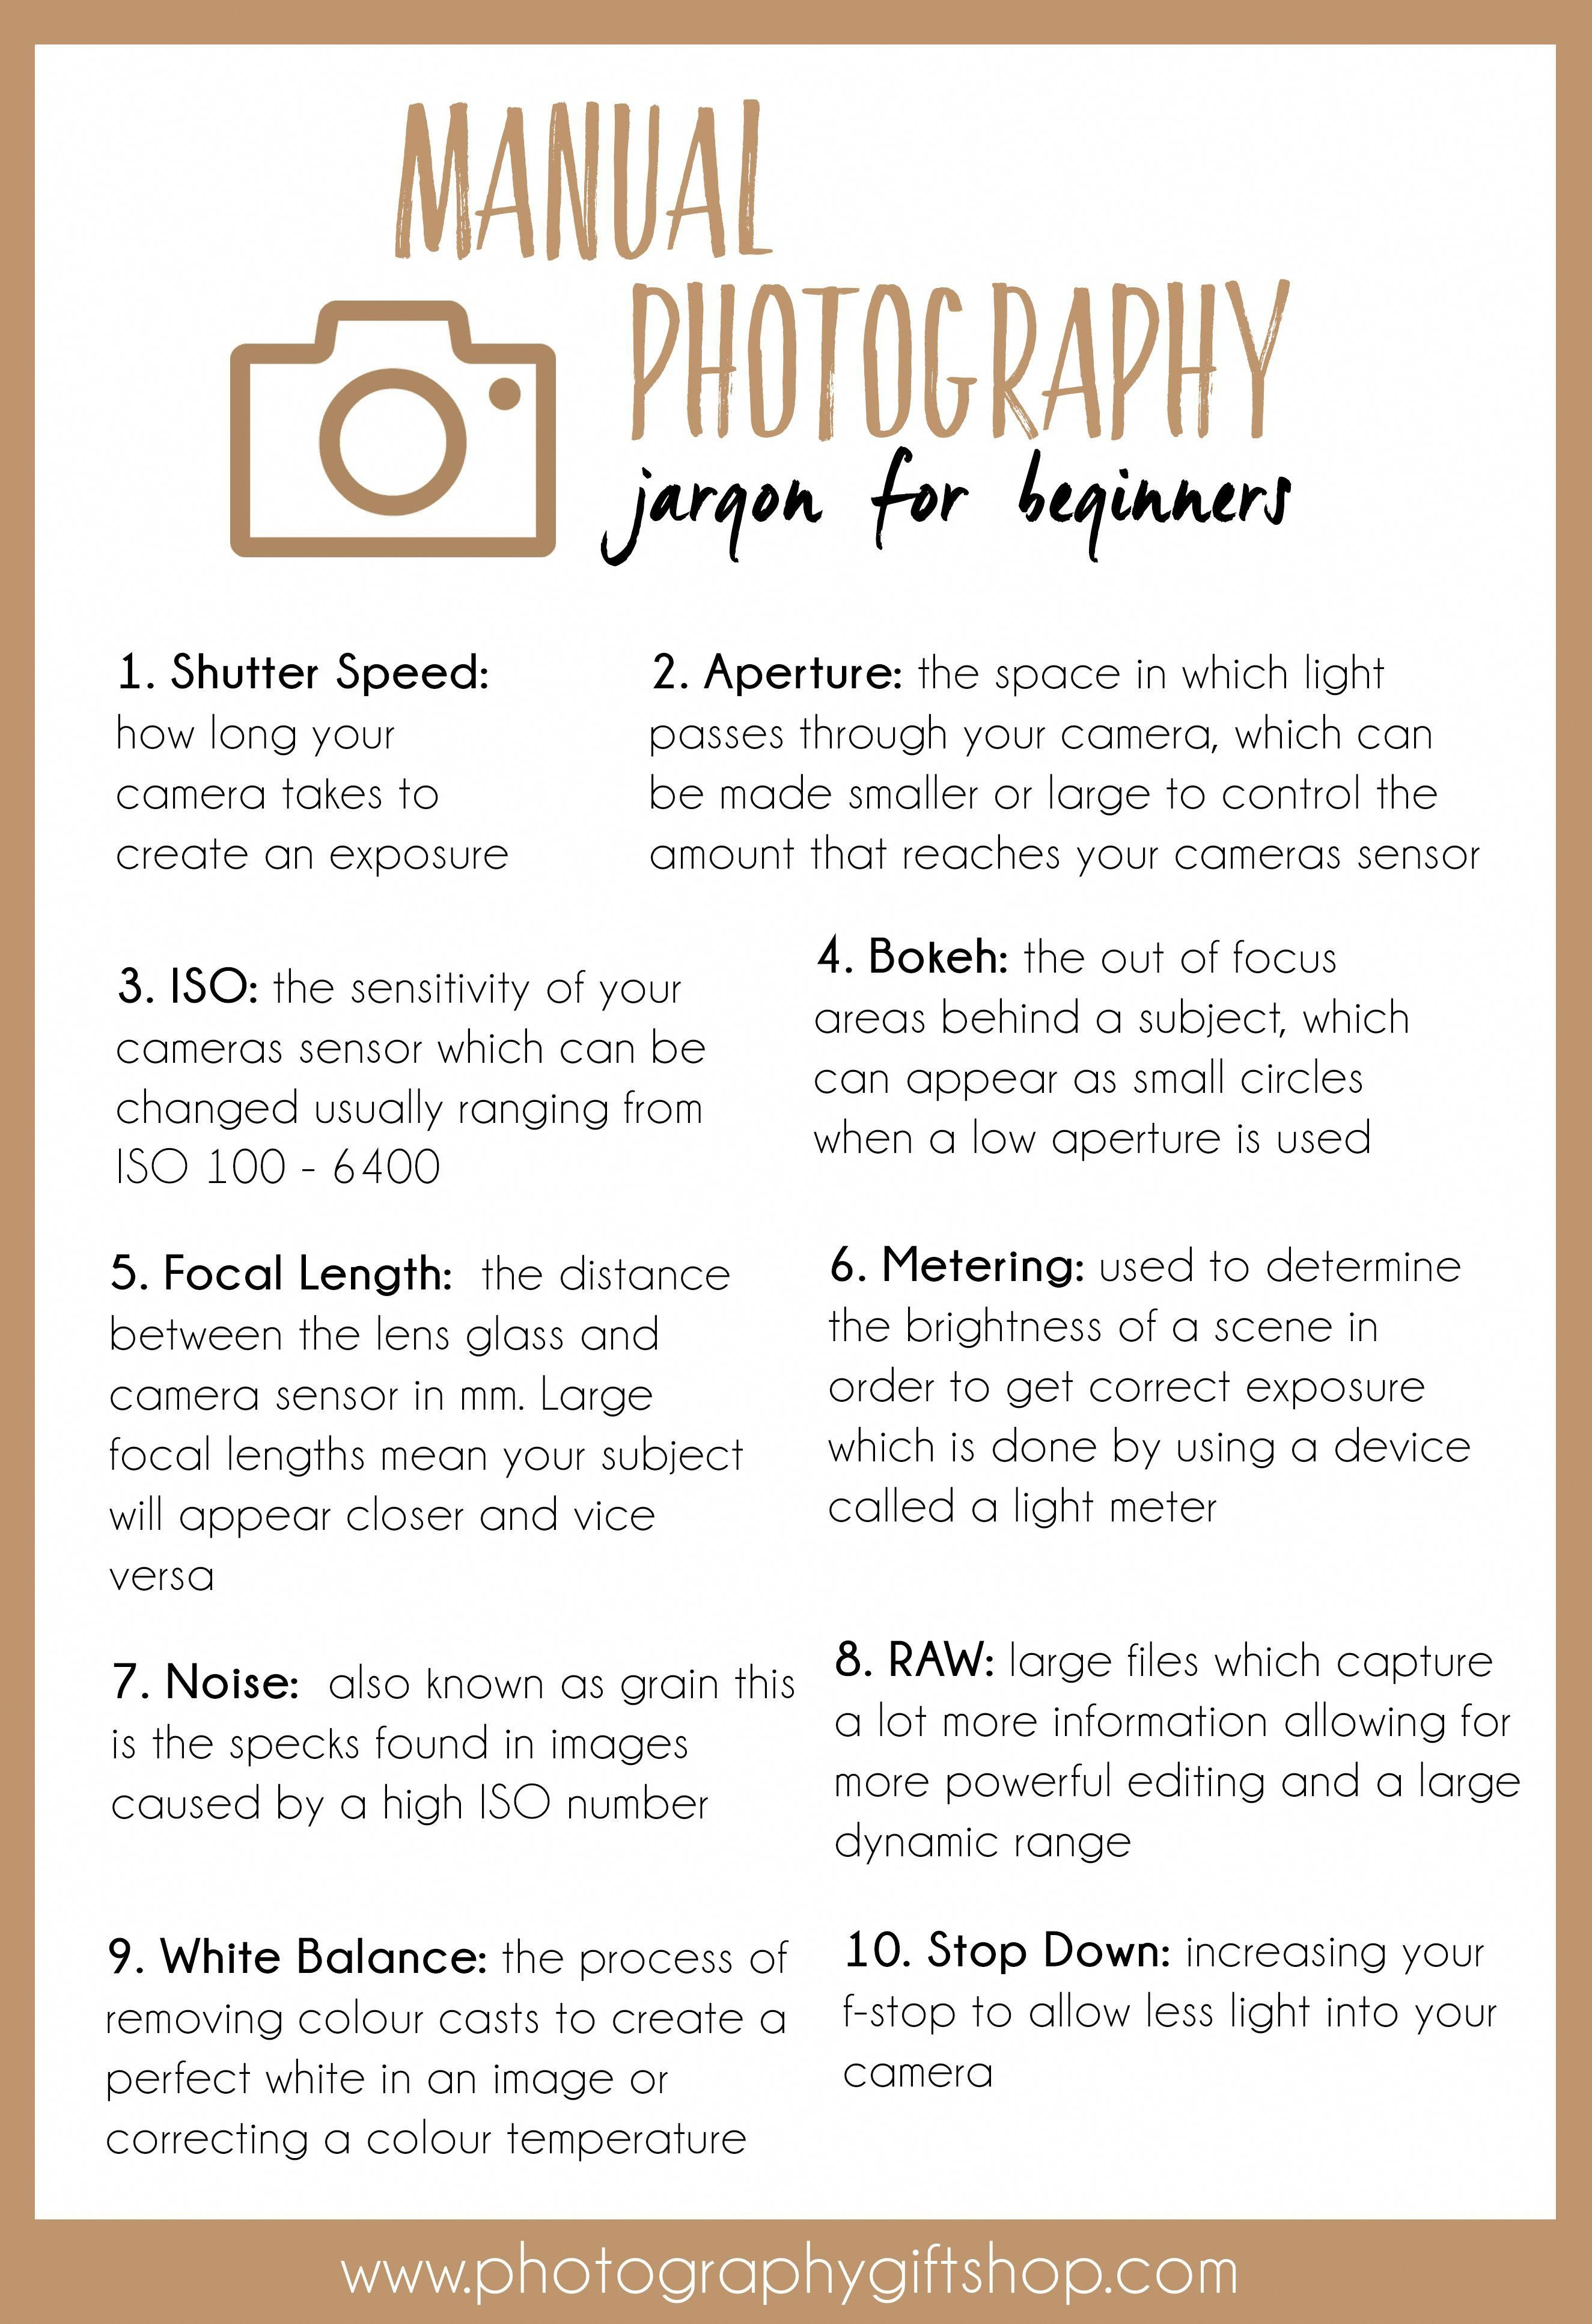 Crack the code of manual photography jargon and definitions for beginner photographers photographytipsforbeginners